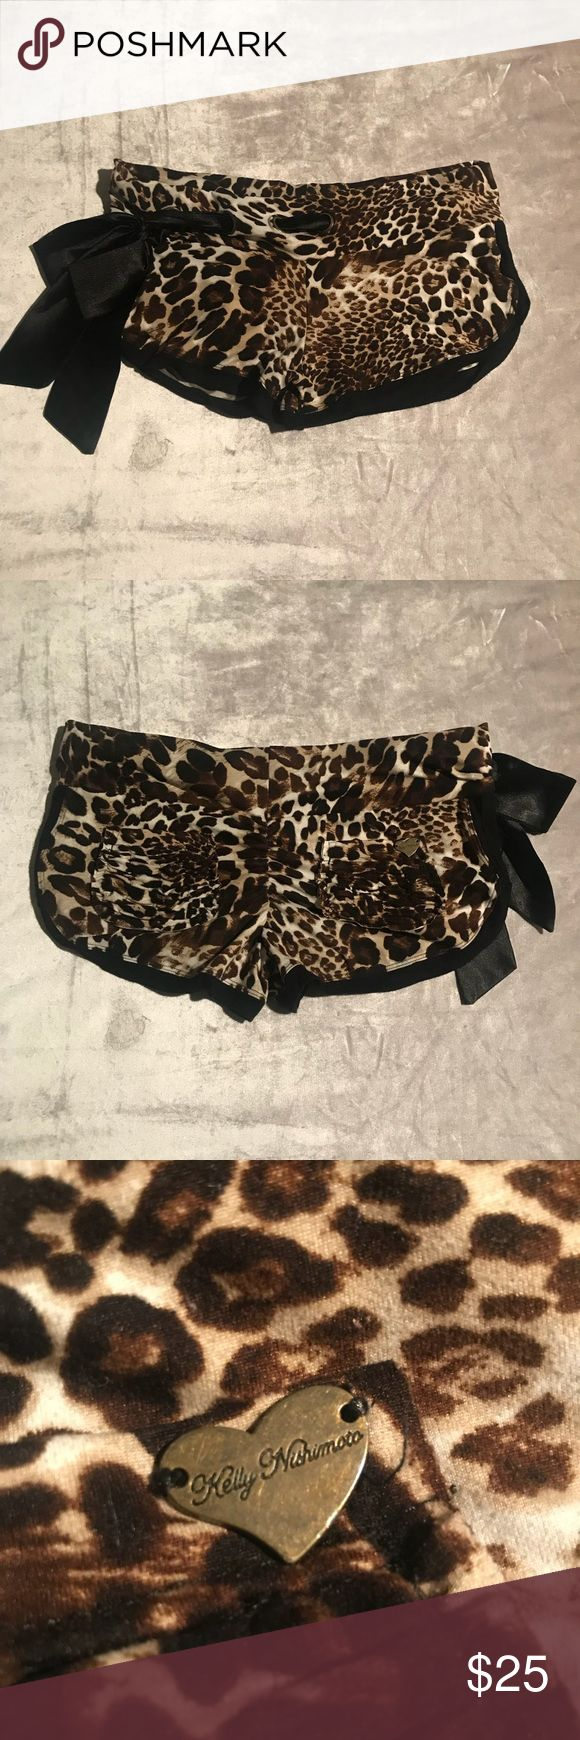 Cute Booty Lounge Leopard Shorts Leopard print cute Booty shorts with scrunch booty and satin tie. In great condition with no apparent flaws. cute booty lounge Shorts